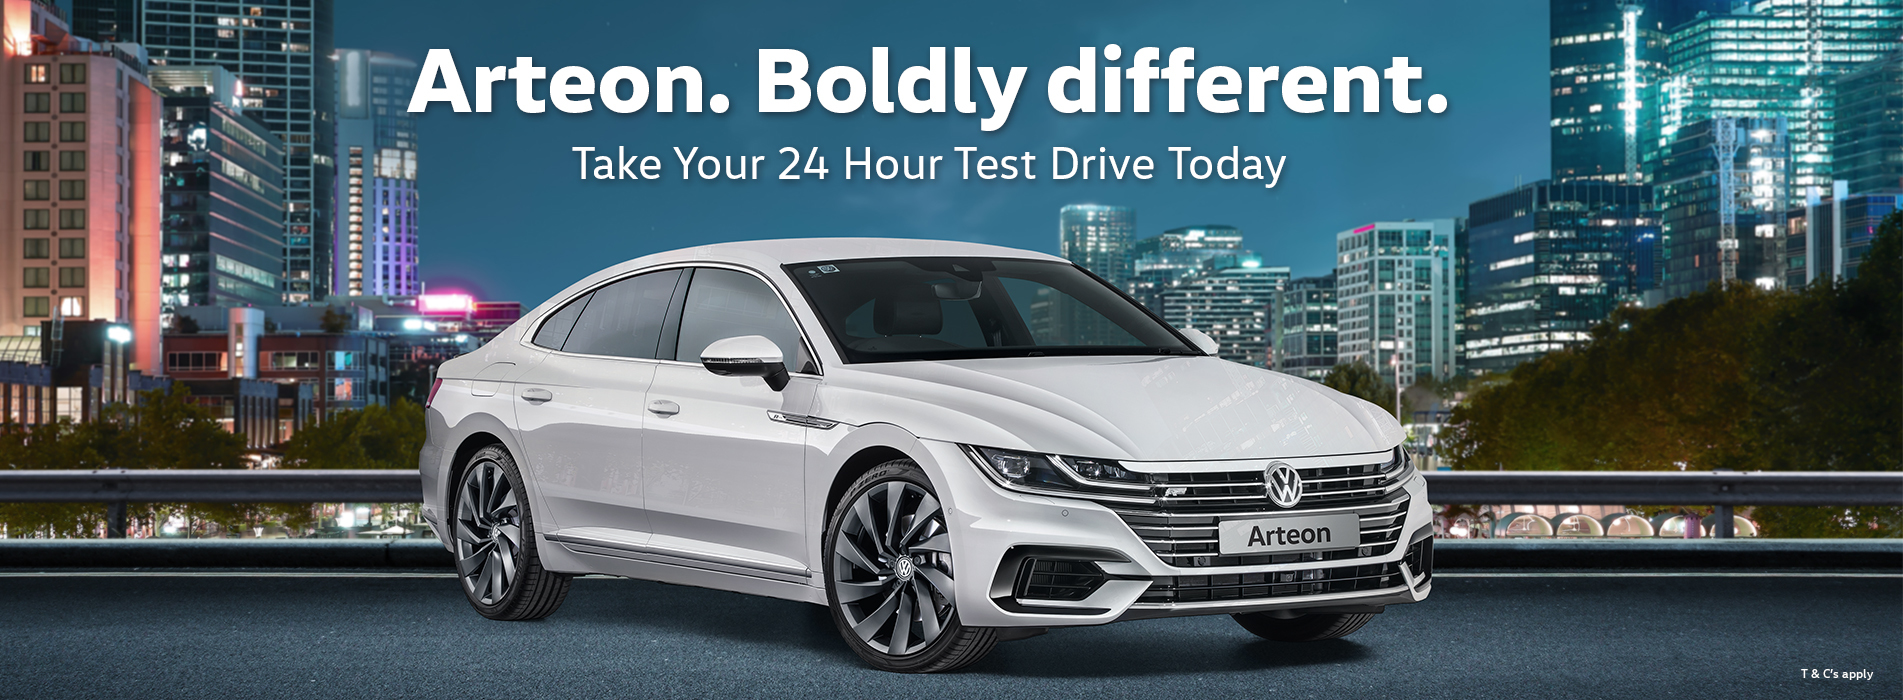 Test Drive an Arteon for 24 hours